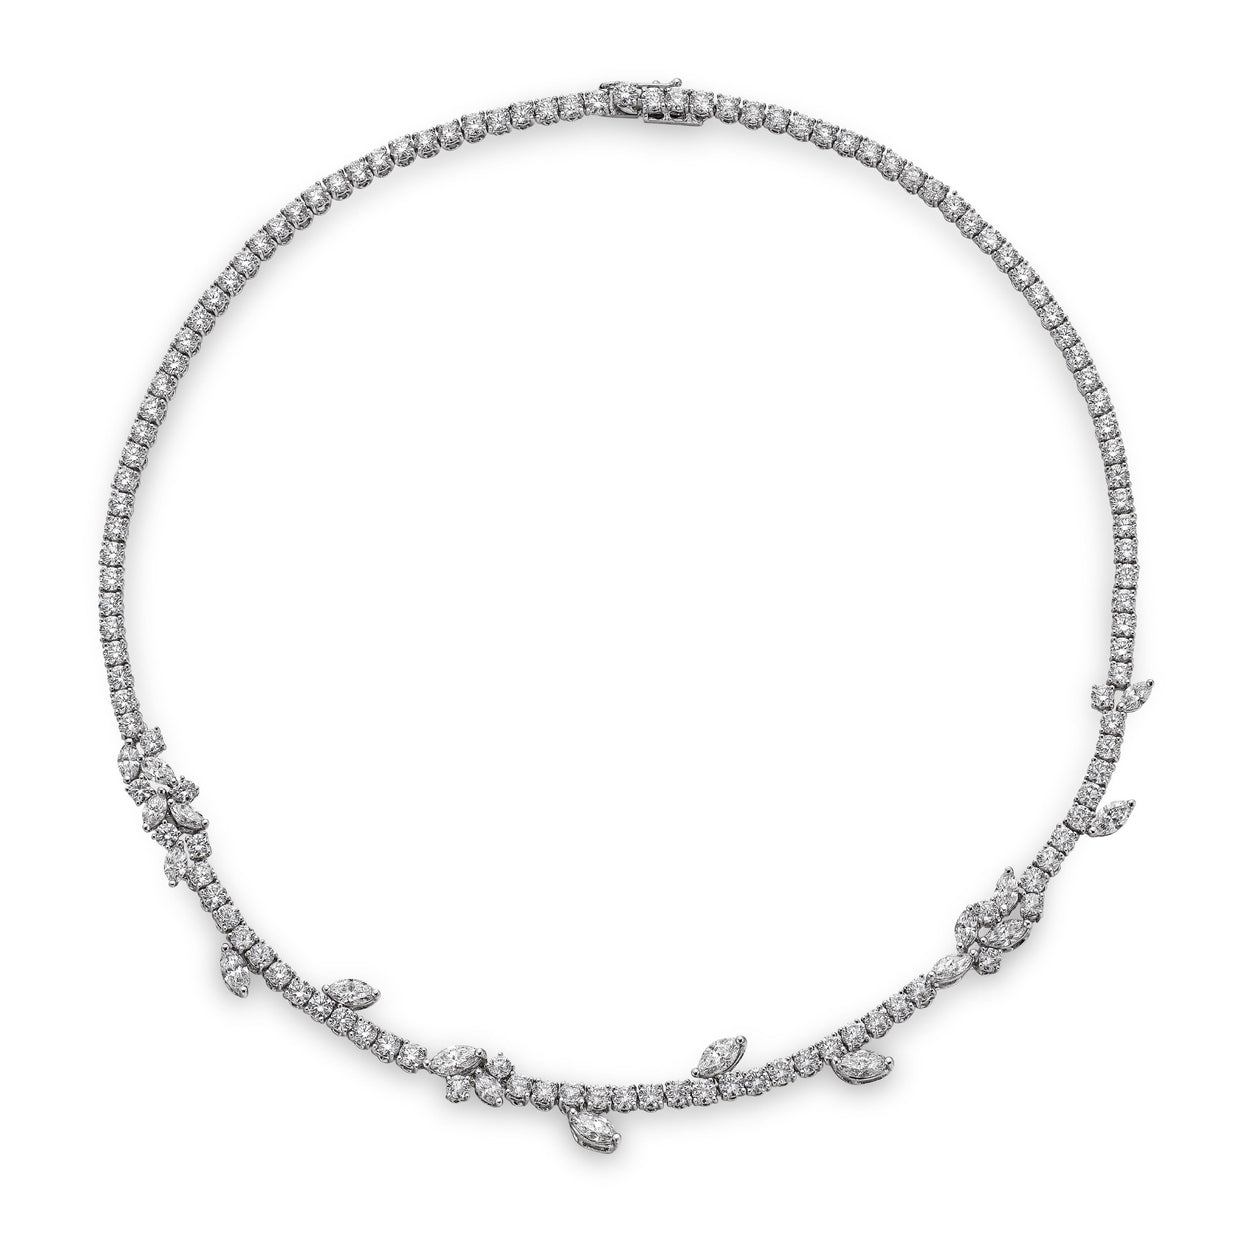 16.09ct Diamond Necklace in 18ct White Gold - Hamilton & Inches